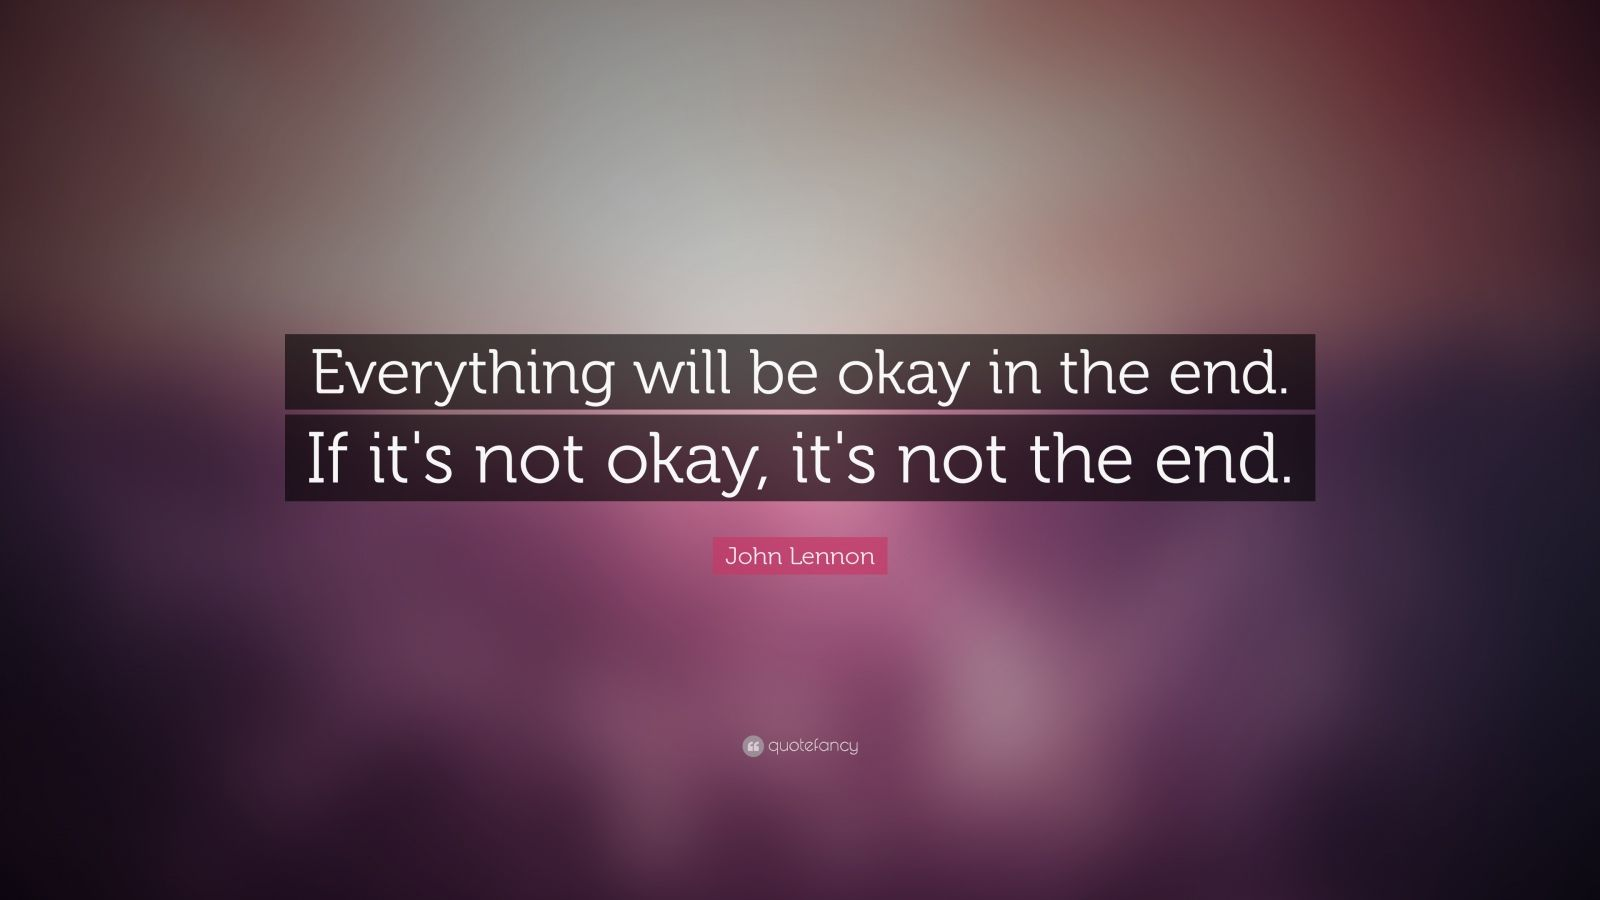 john lennon quote everything will be okay in the end if it 39 s not okay it 39 s not the end 12. Black Bedroom Furniture Sets. Home Design Ideas